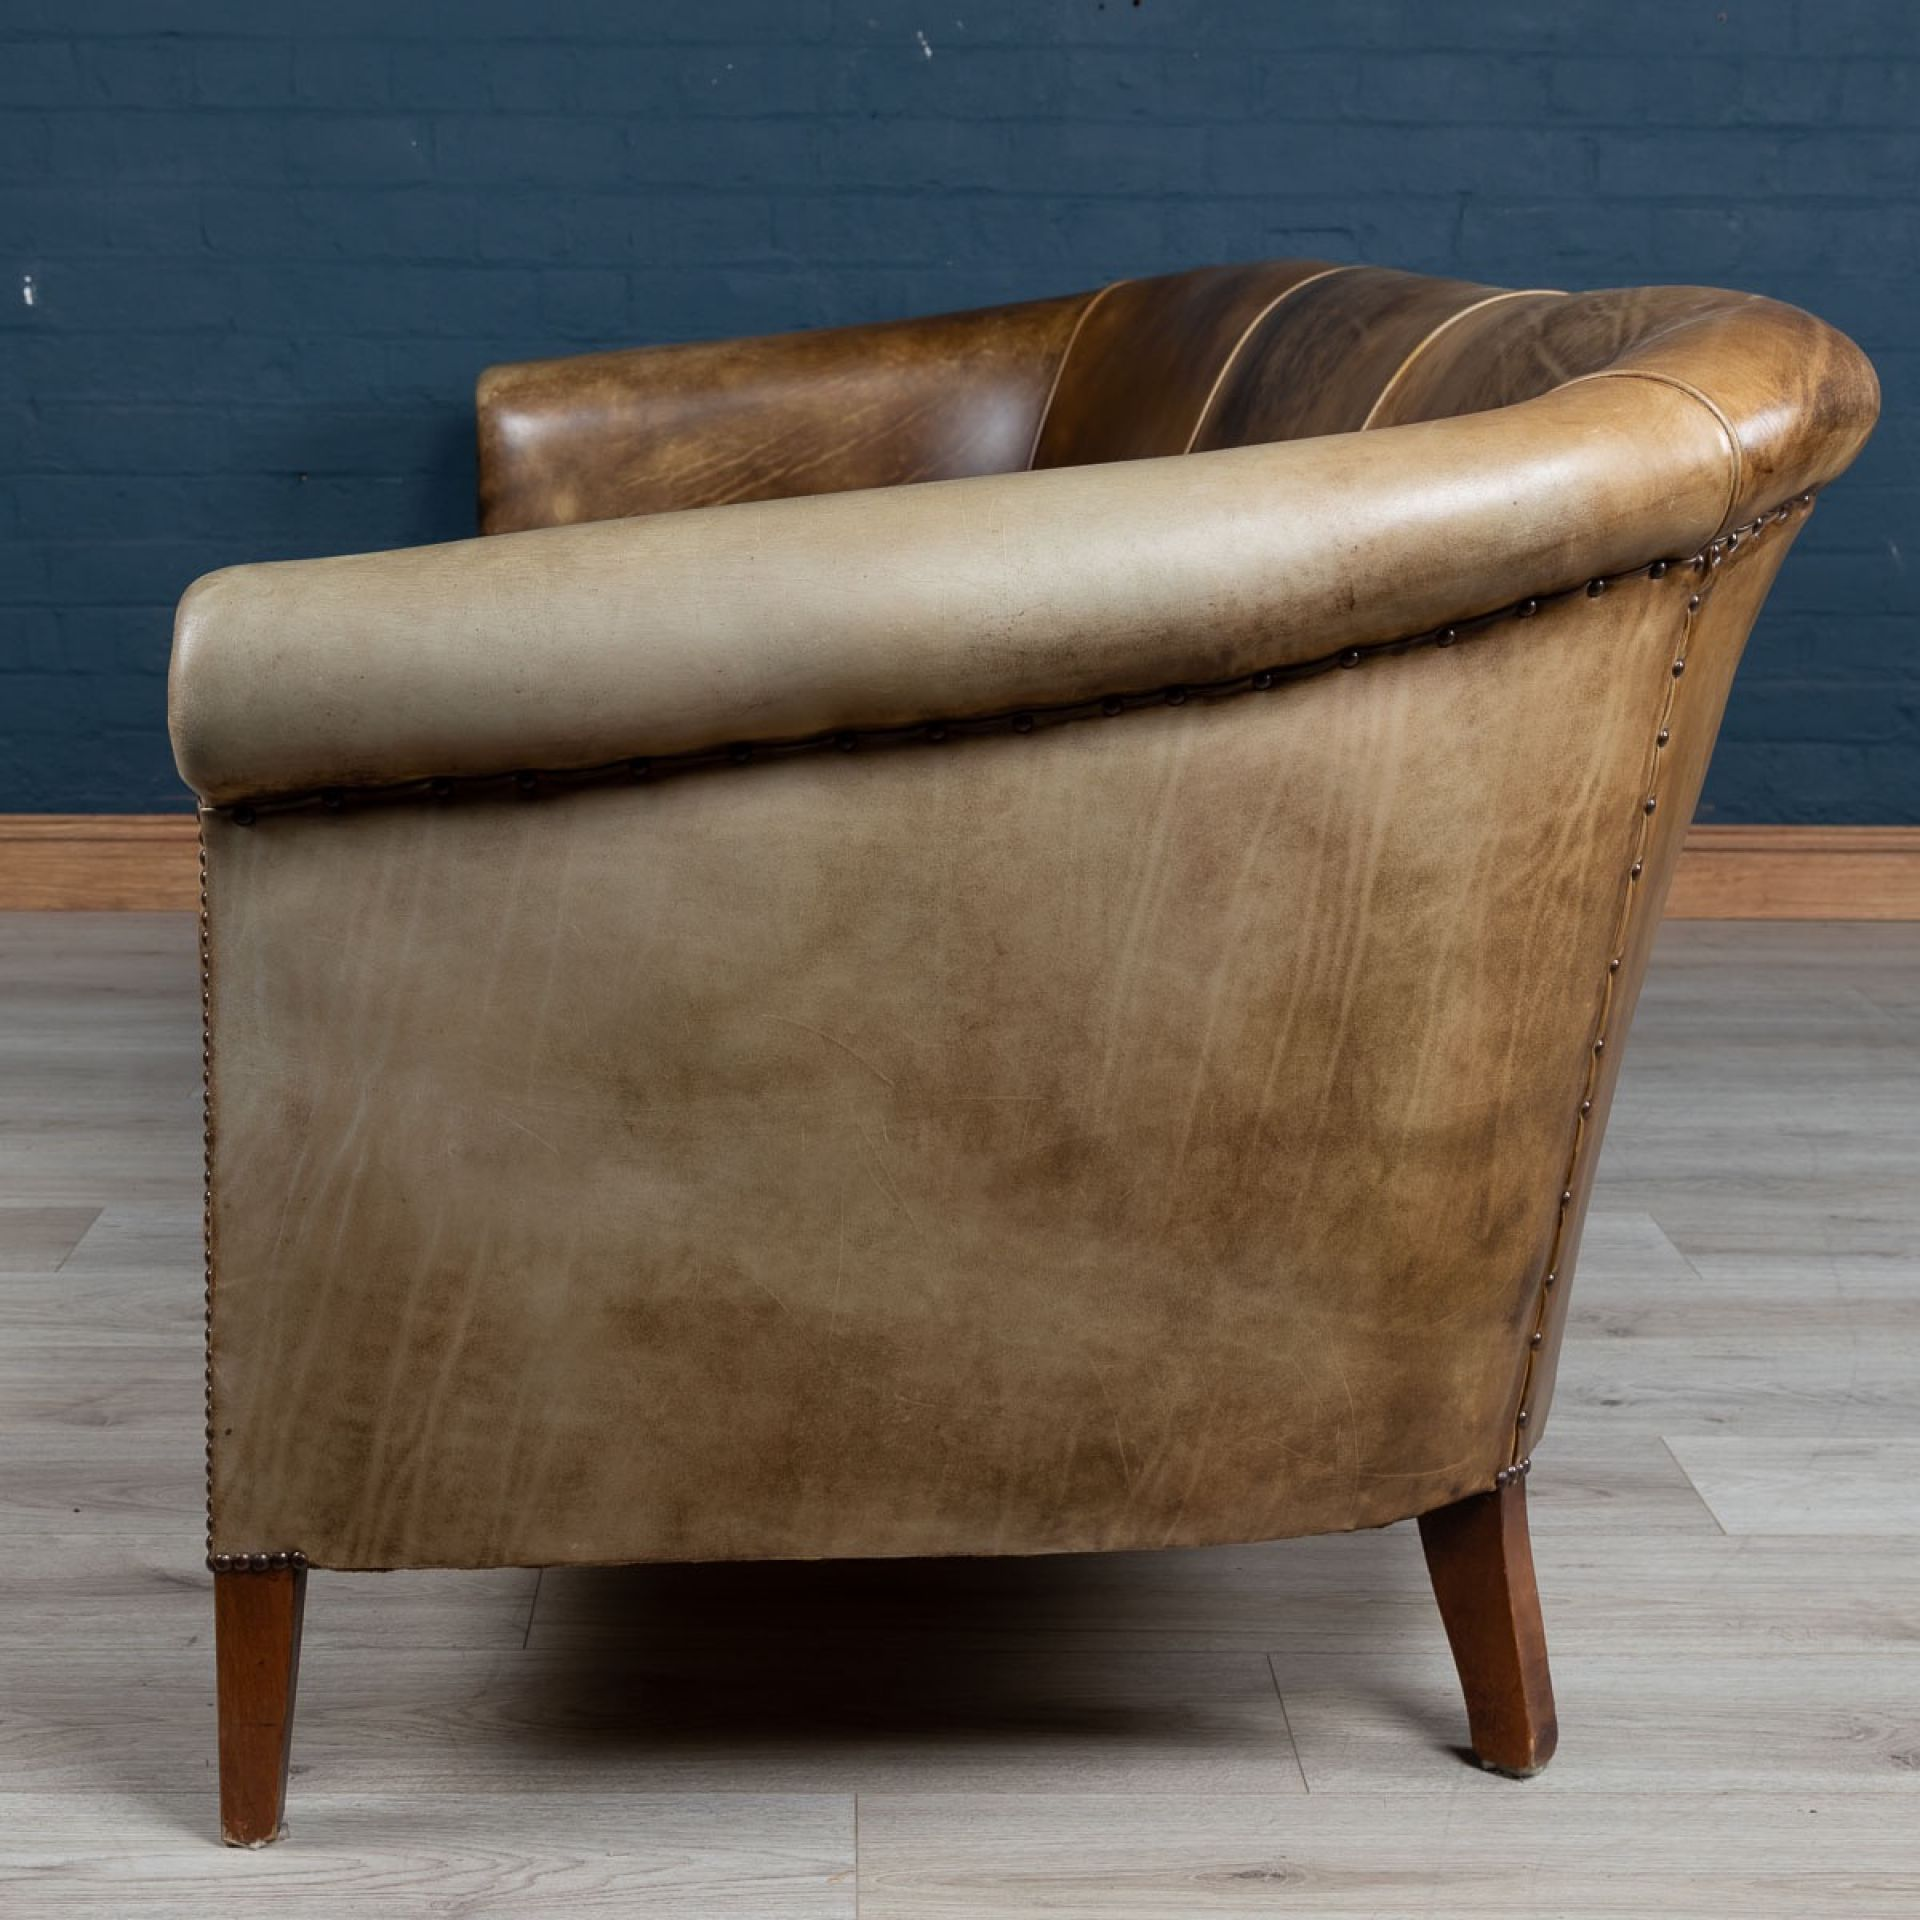 MASSIVE 20thC DUTCH SHEEPSKIN LEATHER SOFA c.1970